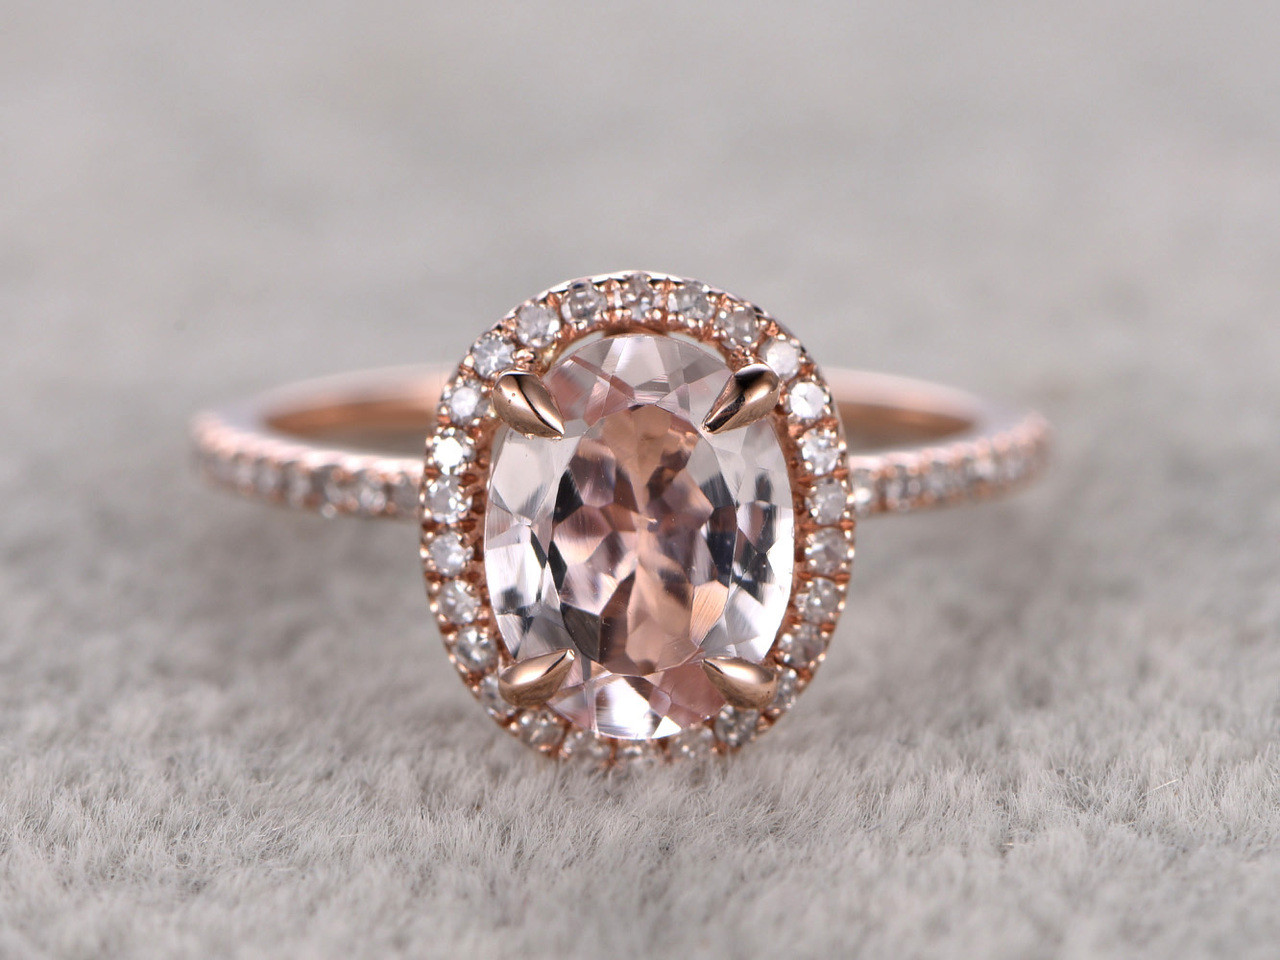 9579c1e470901 1.2 Carat Oval Morganite Engagement Ring Diamond Promise Ring 14k Rose Gold  Halo Stacking Band